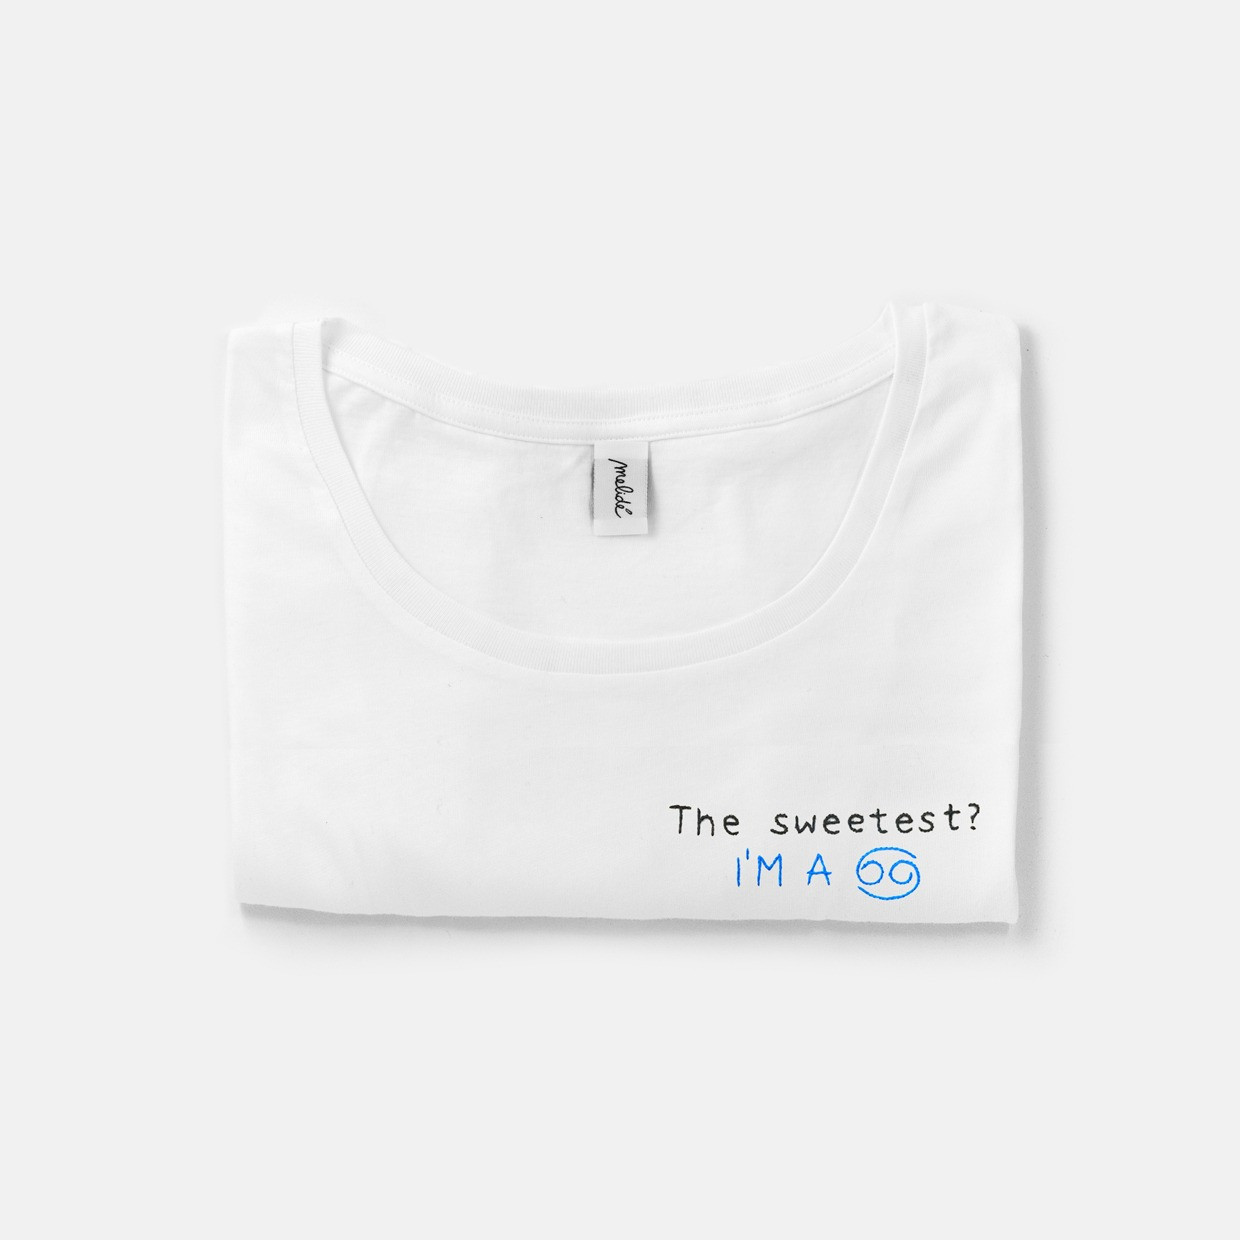 The SEETEST? CANCRO wide neck tee